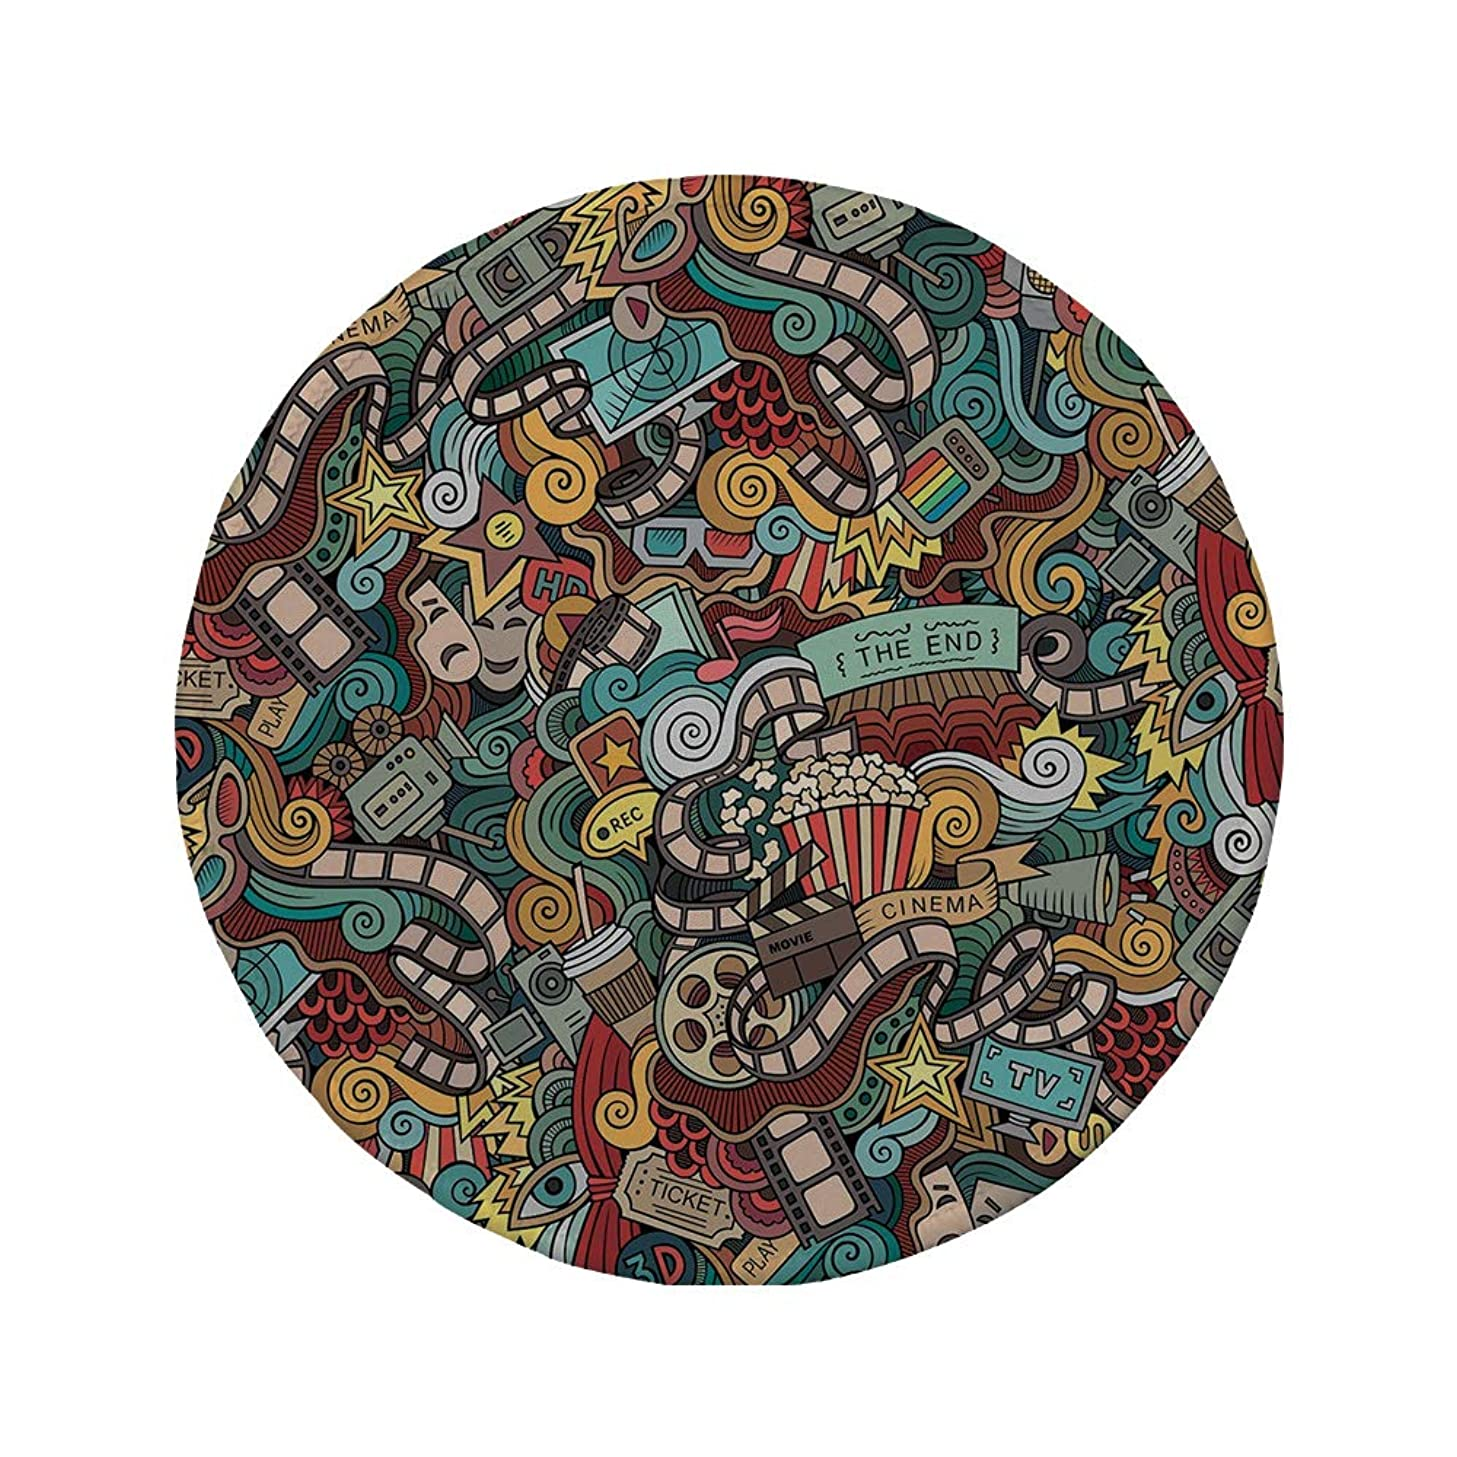 Non-Slip Rubber Round Mouse Pad,Doodle,Cinema Items Combined in an Abstract Style Popcorn Movie Reel The End Theatre Masks Decorative,Multicolor,11.8